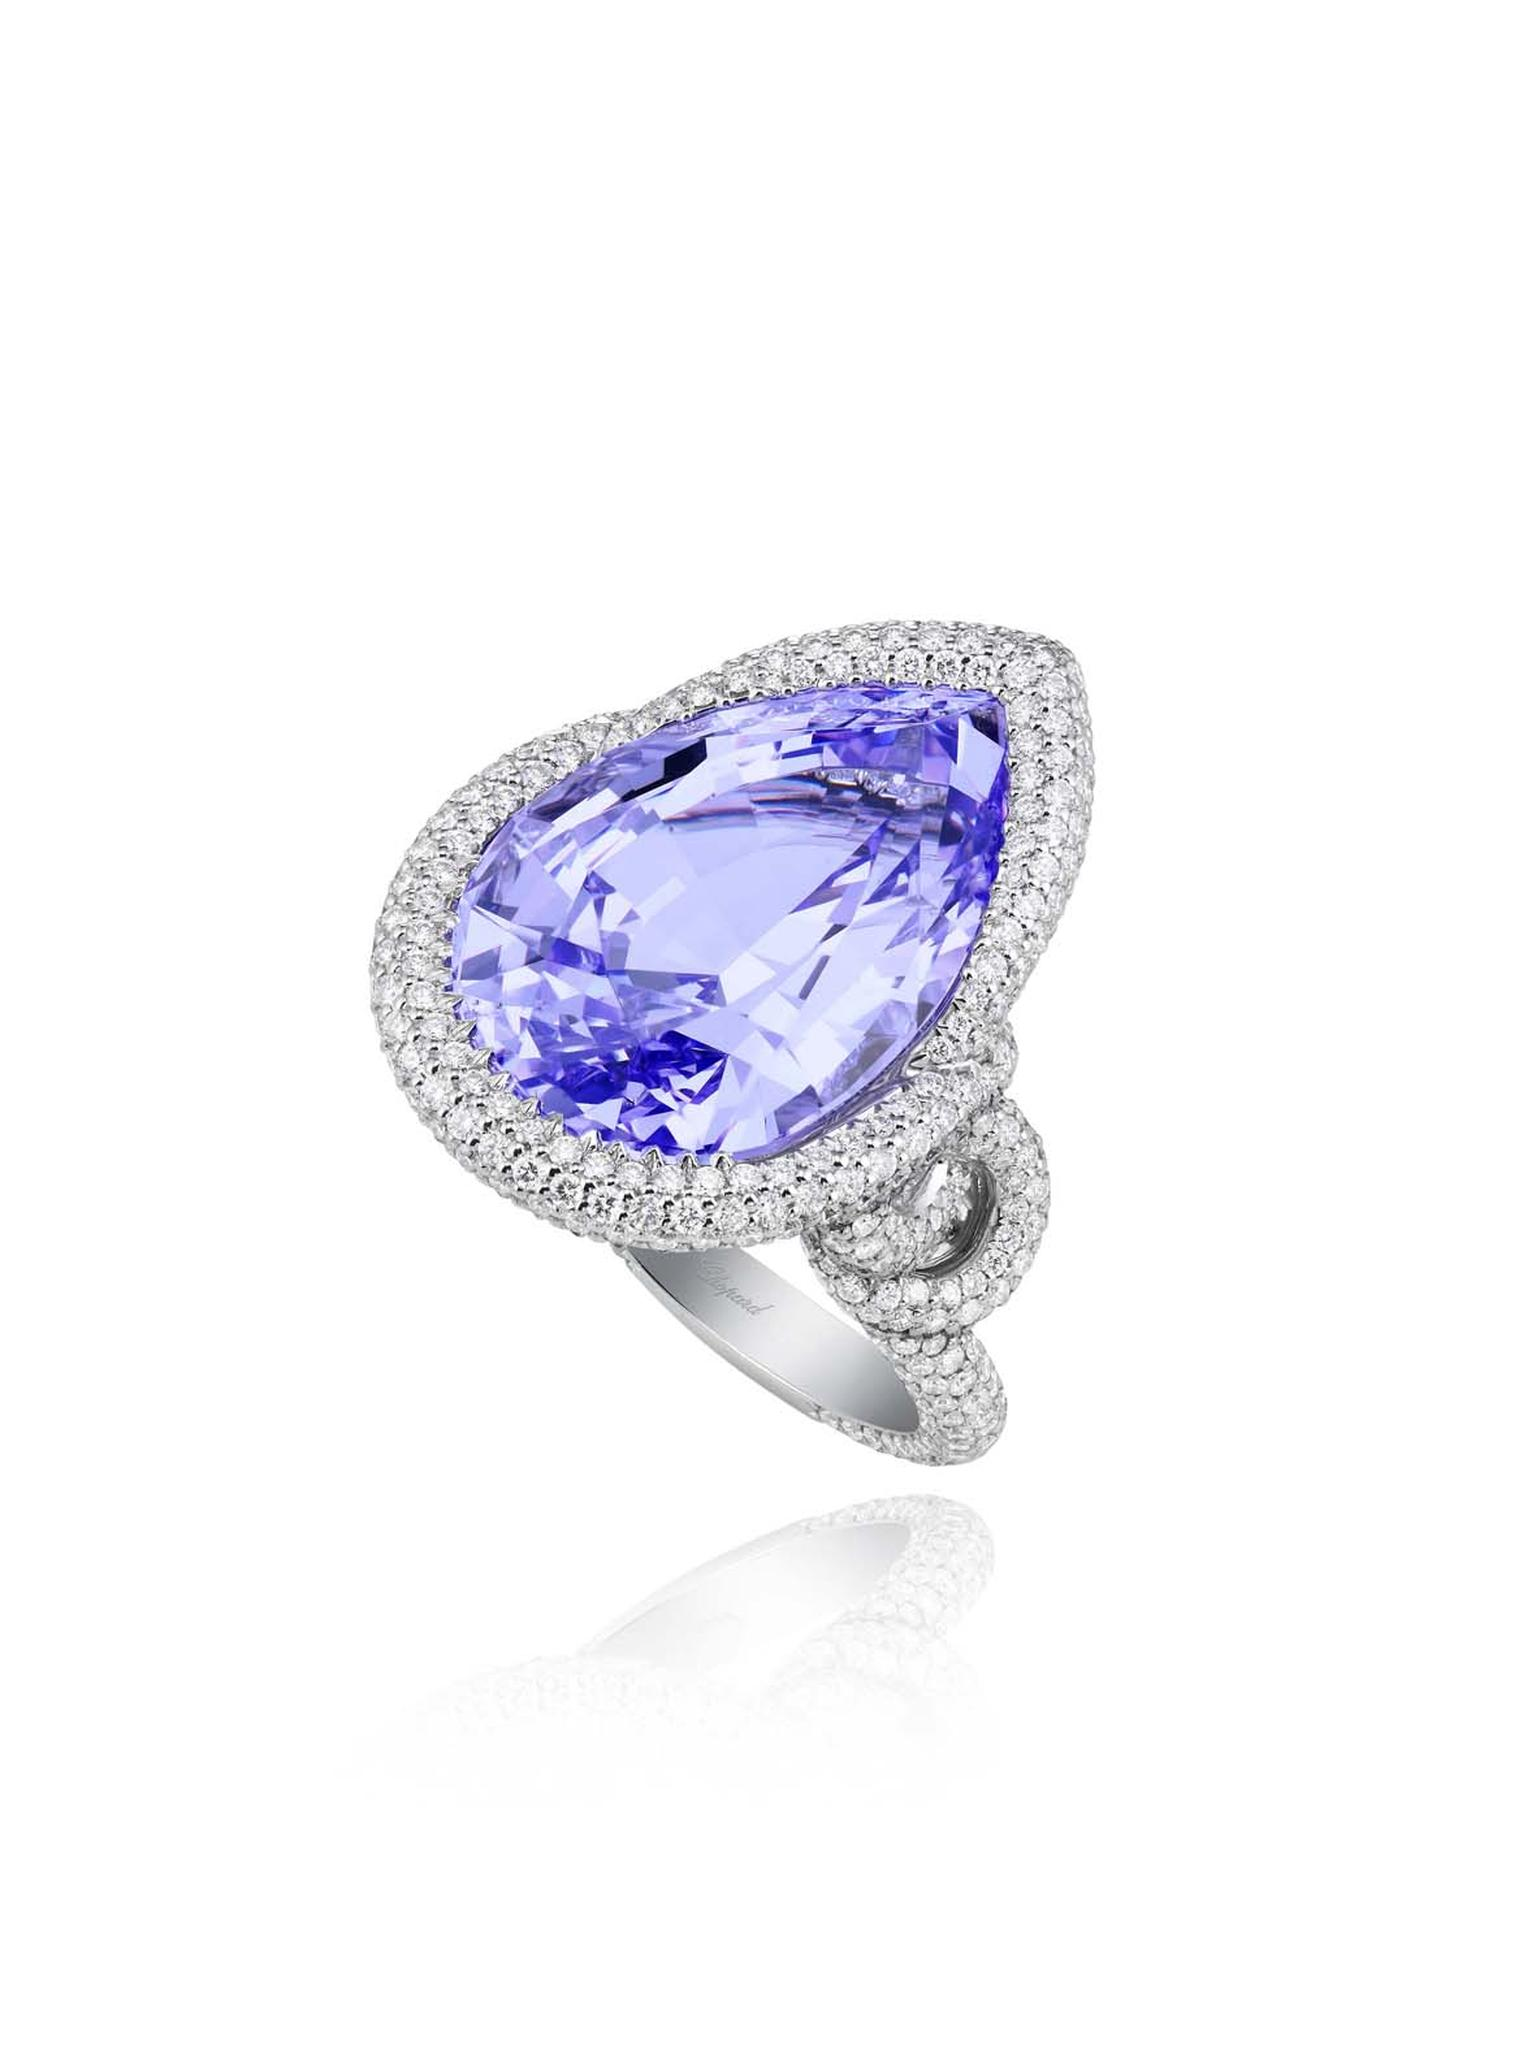 829239-1001 Spinel Ring from the Red Carpet Collection 2013ChopardChopard.jpg